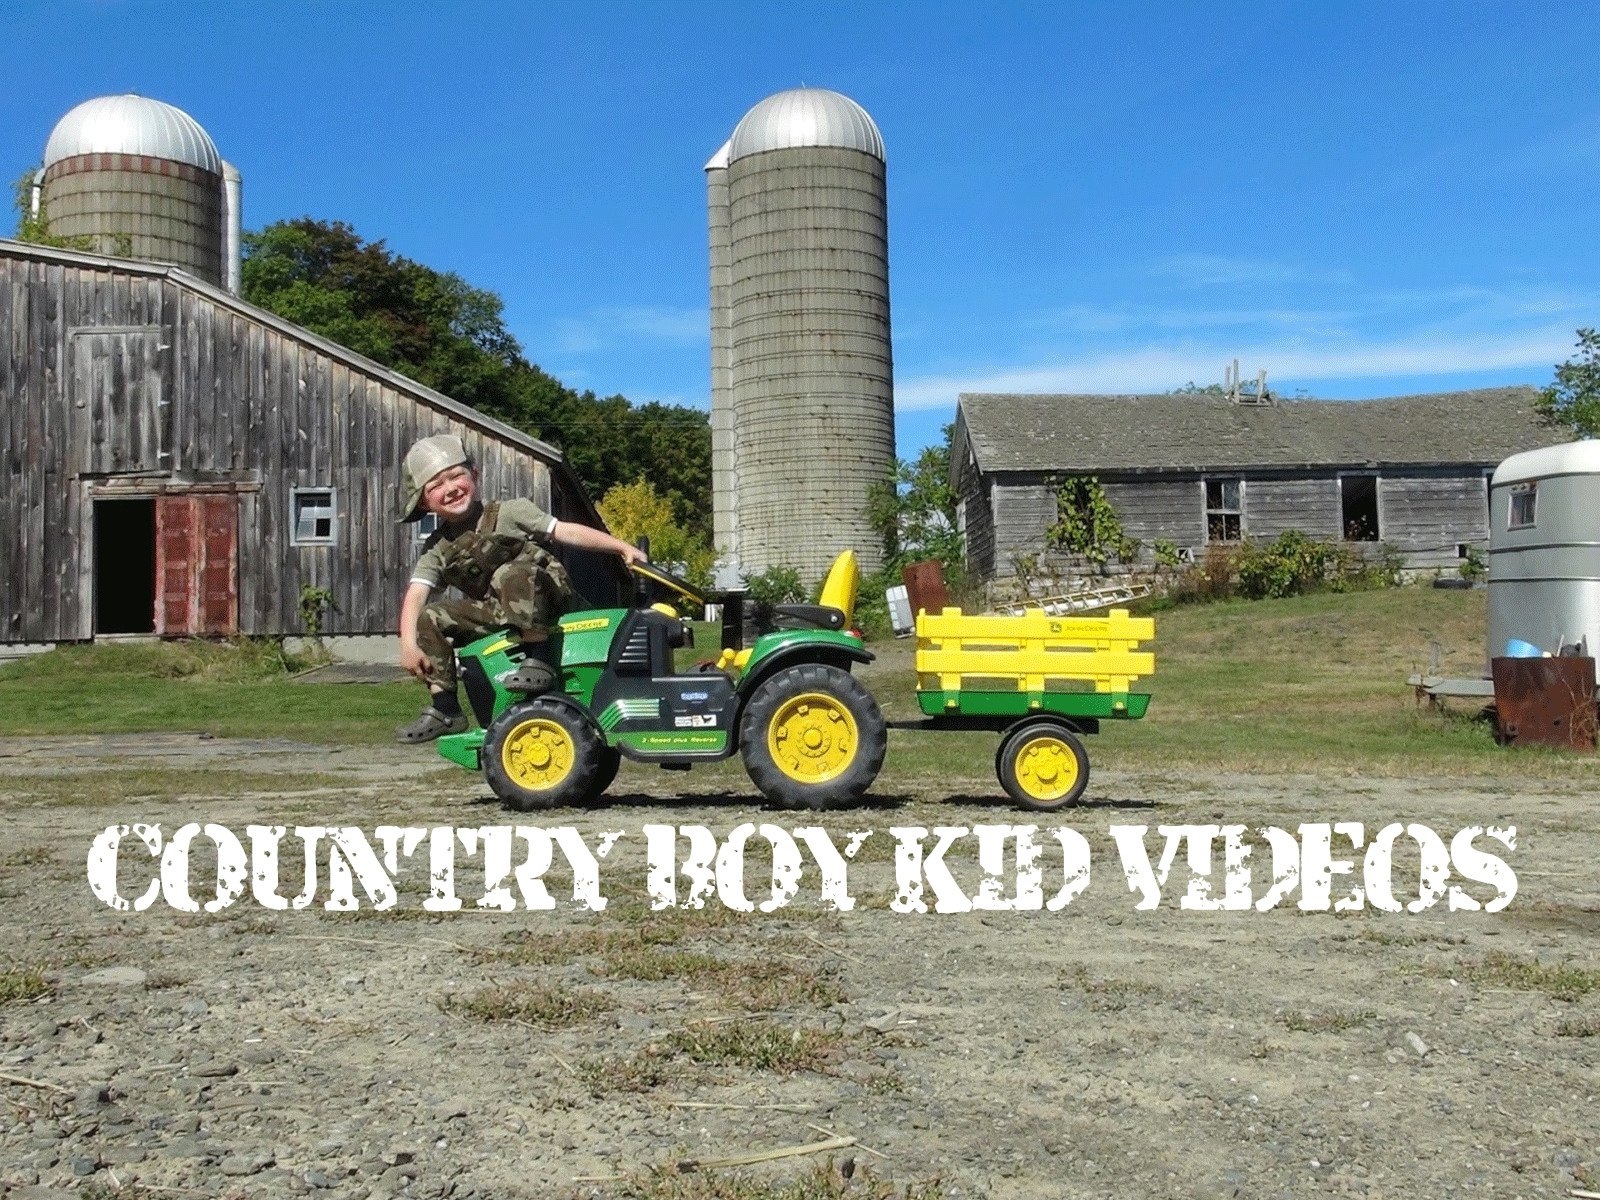 Country Boy Kid Videos on Amazon Prime Video UK